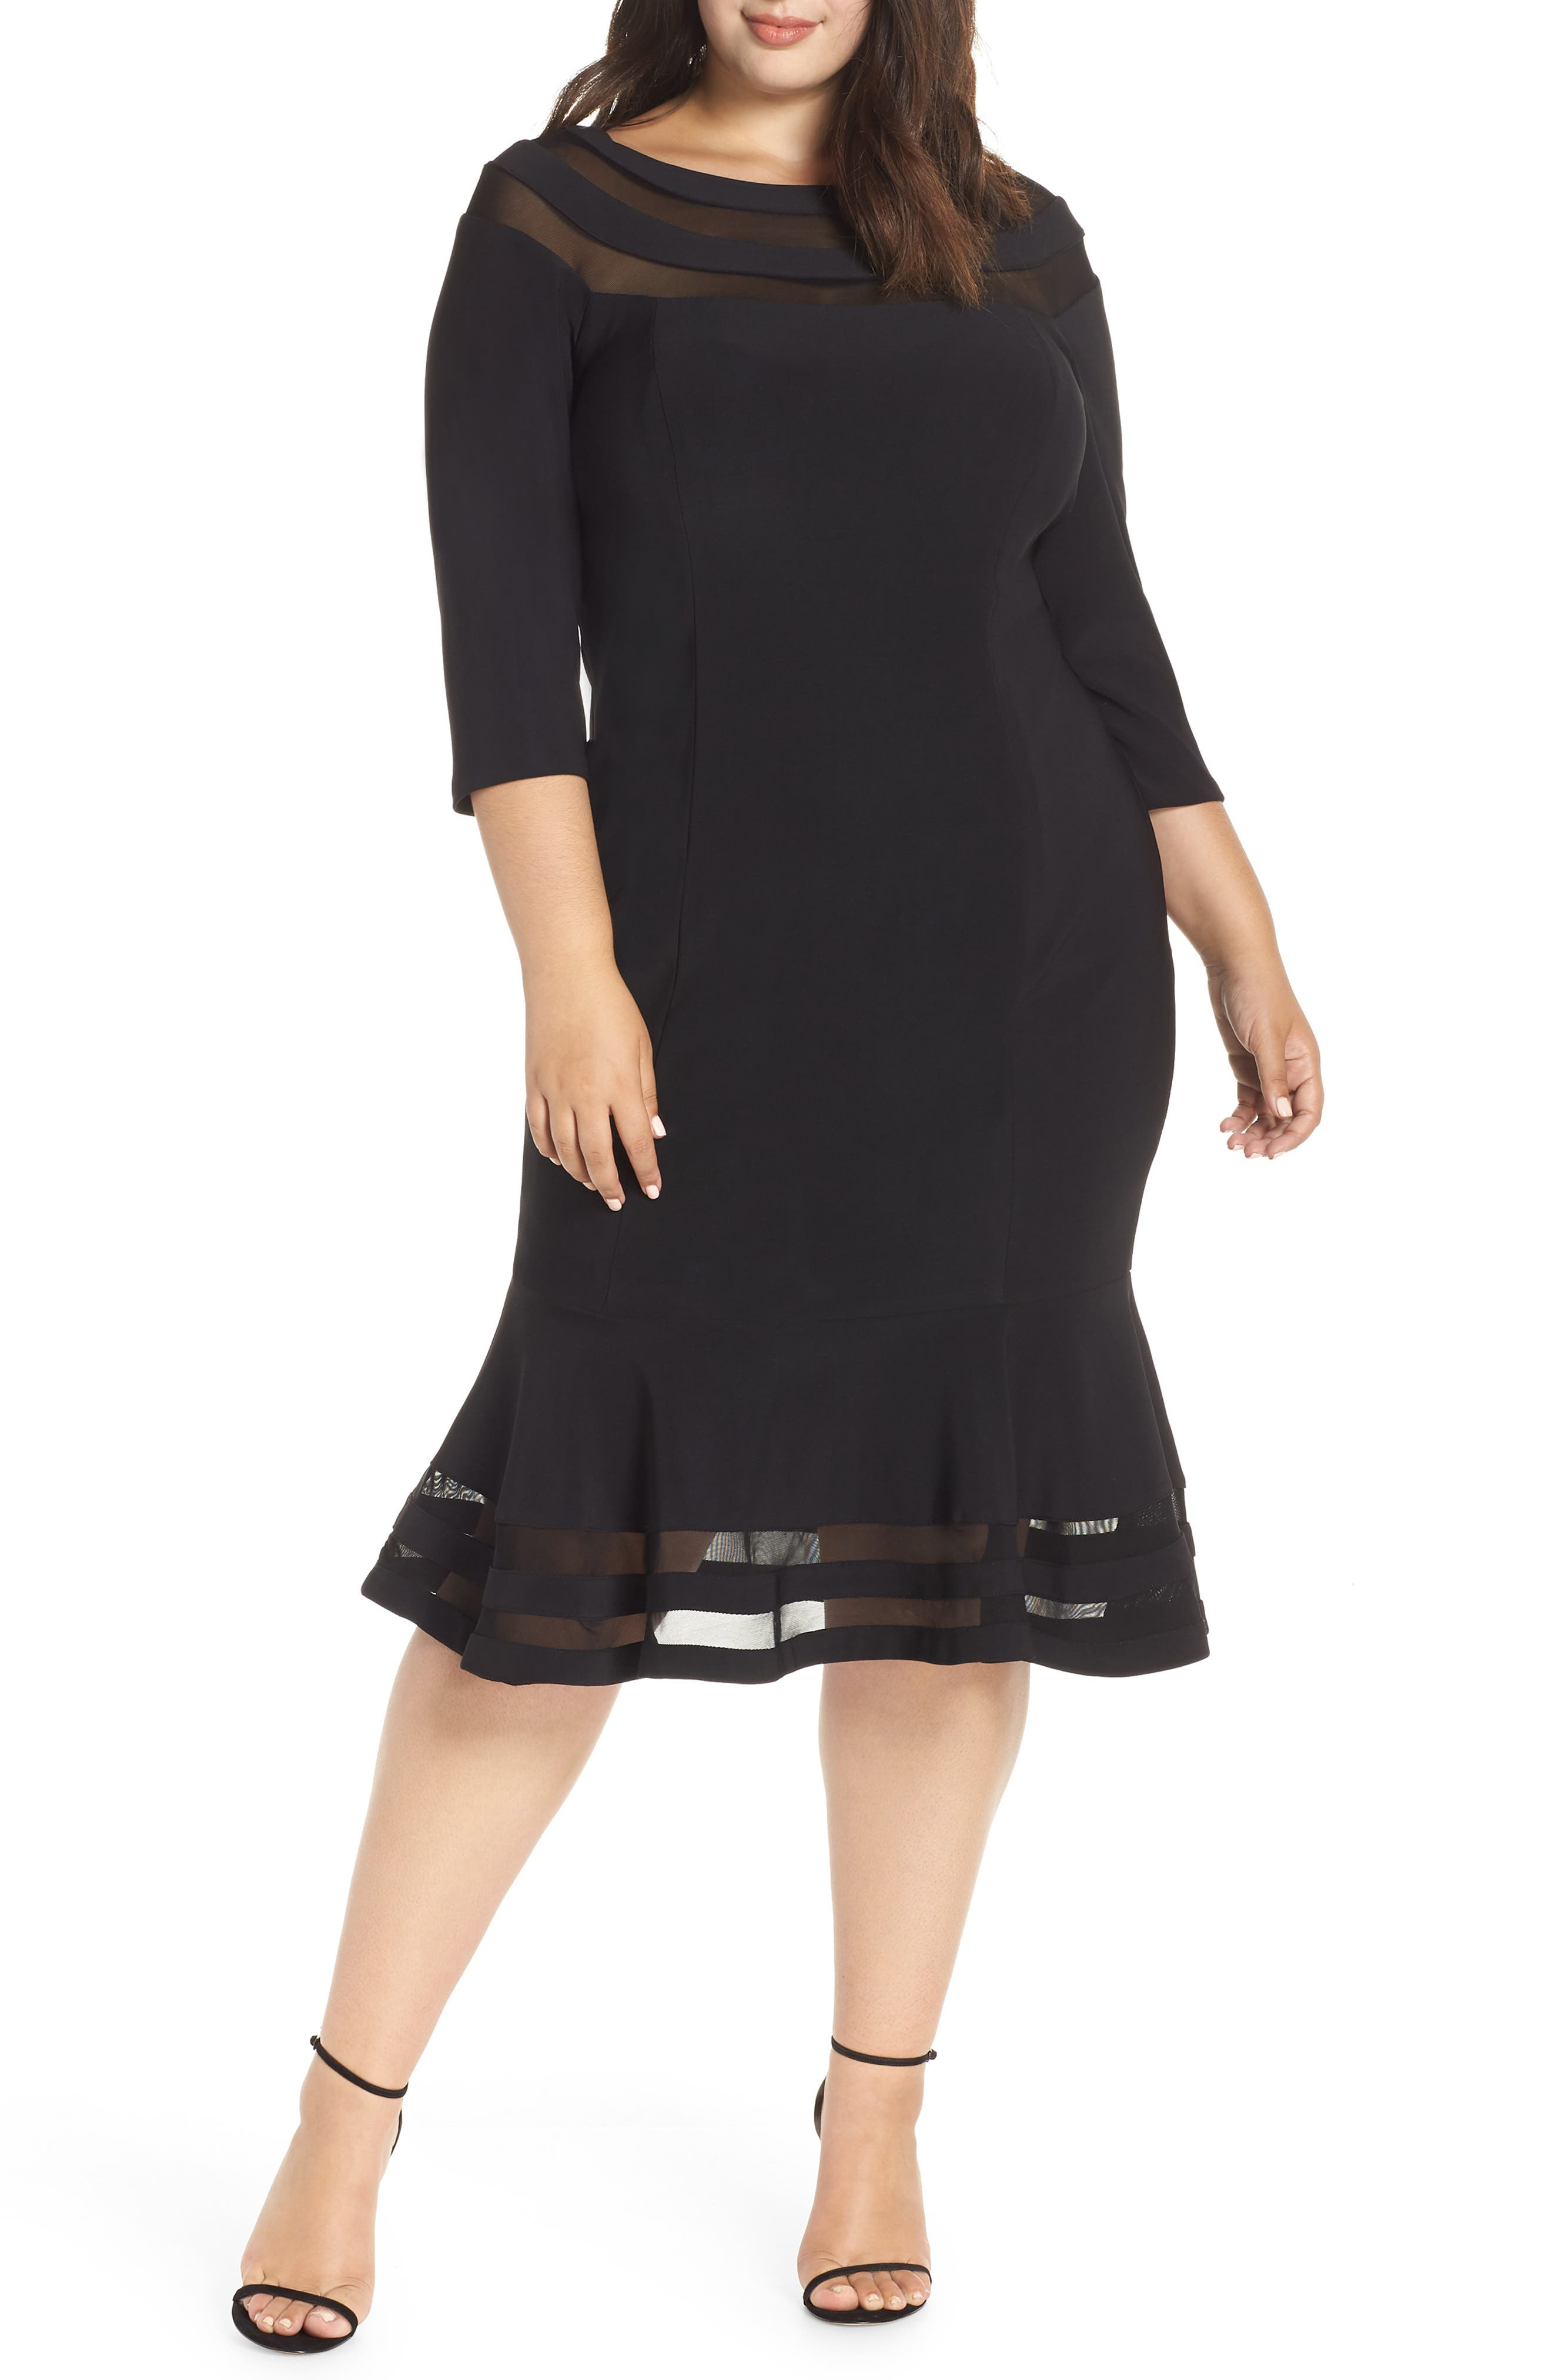 Plus Size Dressy Dresses for Women